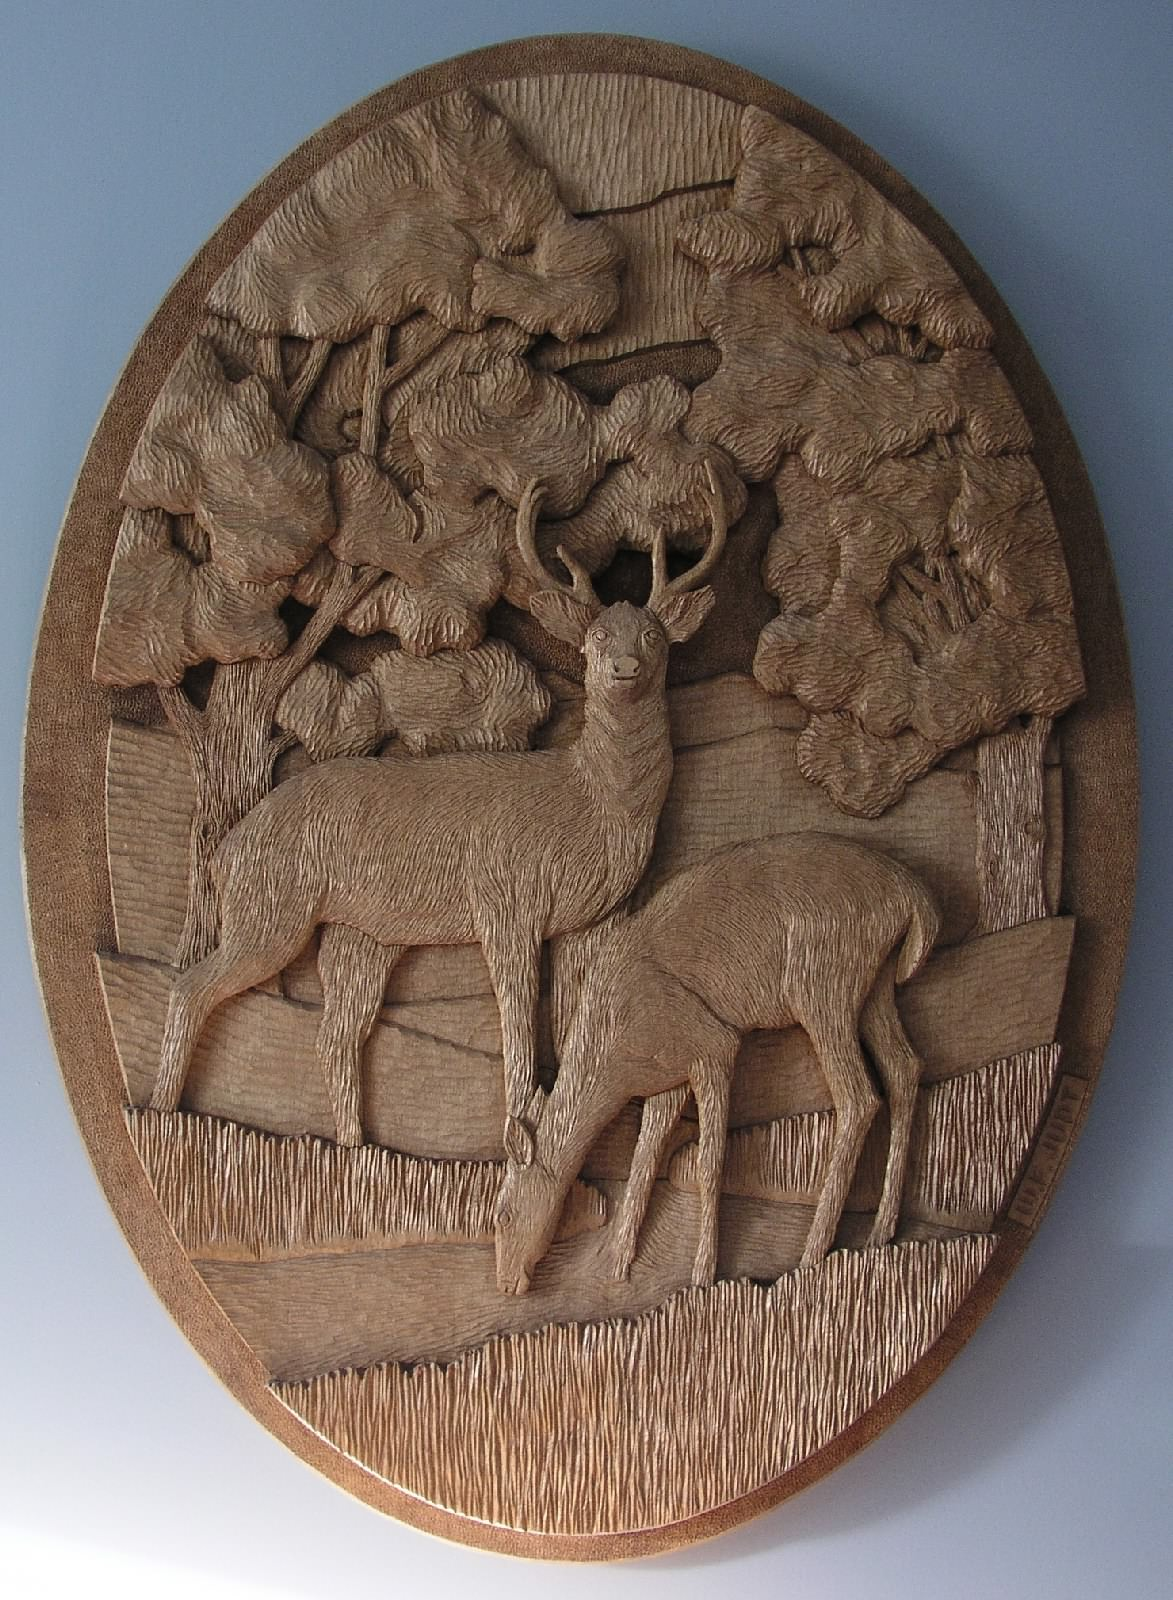 The bark shack relief carving